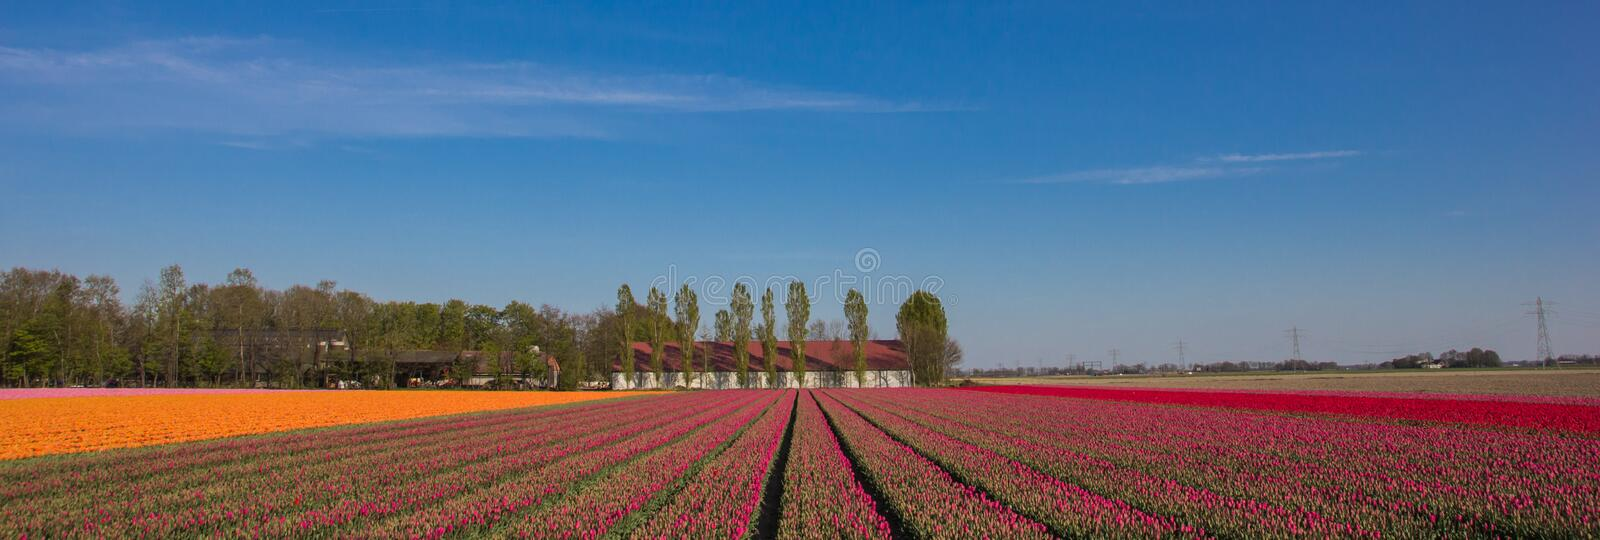 Panorama of a field of pink, red and yellow tulips and farm stock photo